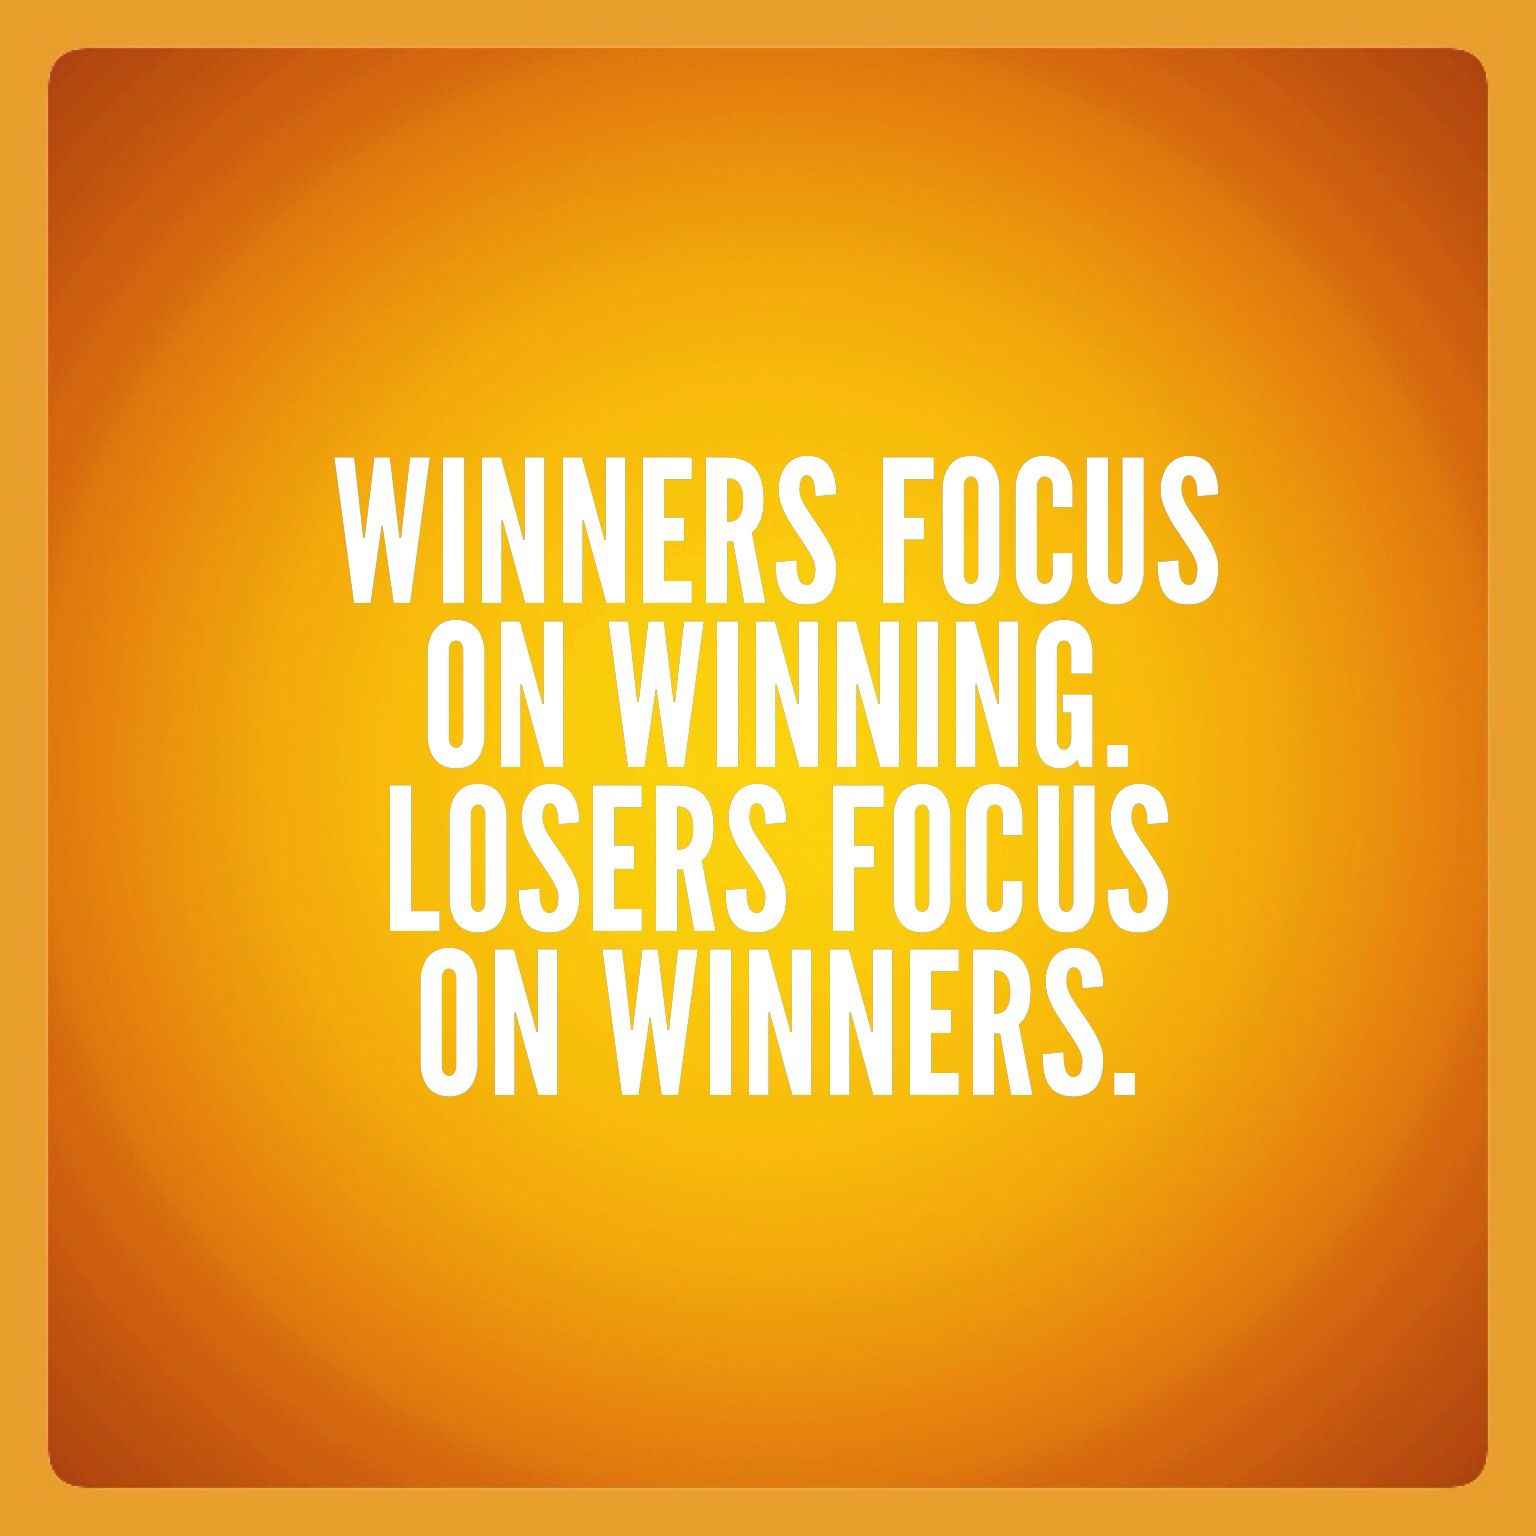 Quotes About Winning Winners Focus On Winninglosers Focus On Winners Quotes .